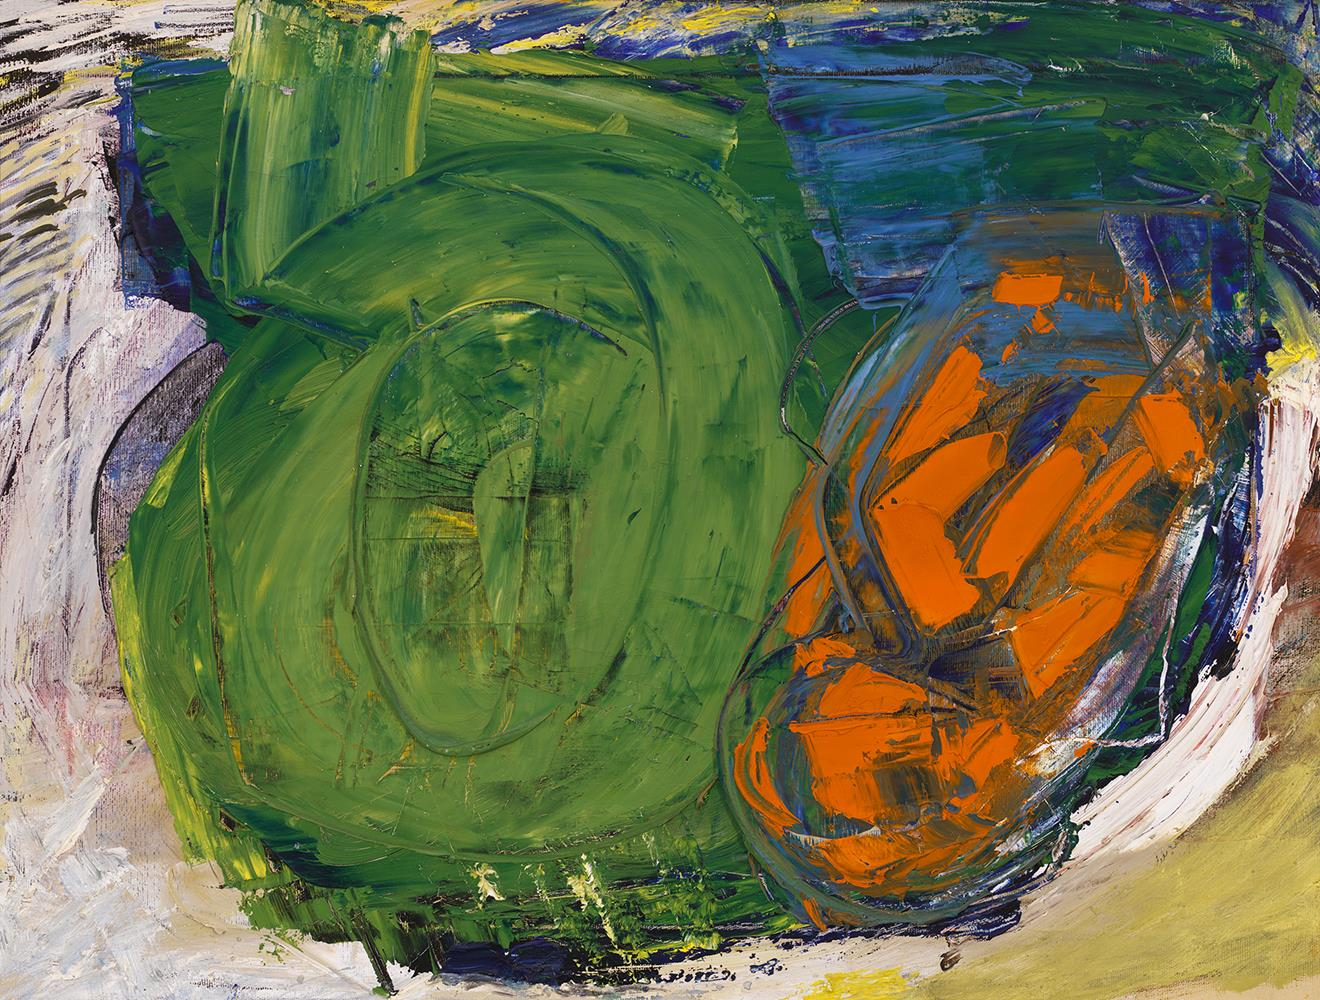 Yvonne Thomas (1913-2009), Allegro, 1961, Oil on canvas, 18 x 24 inches